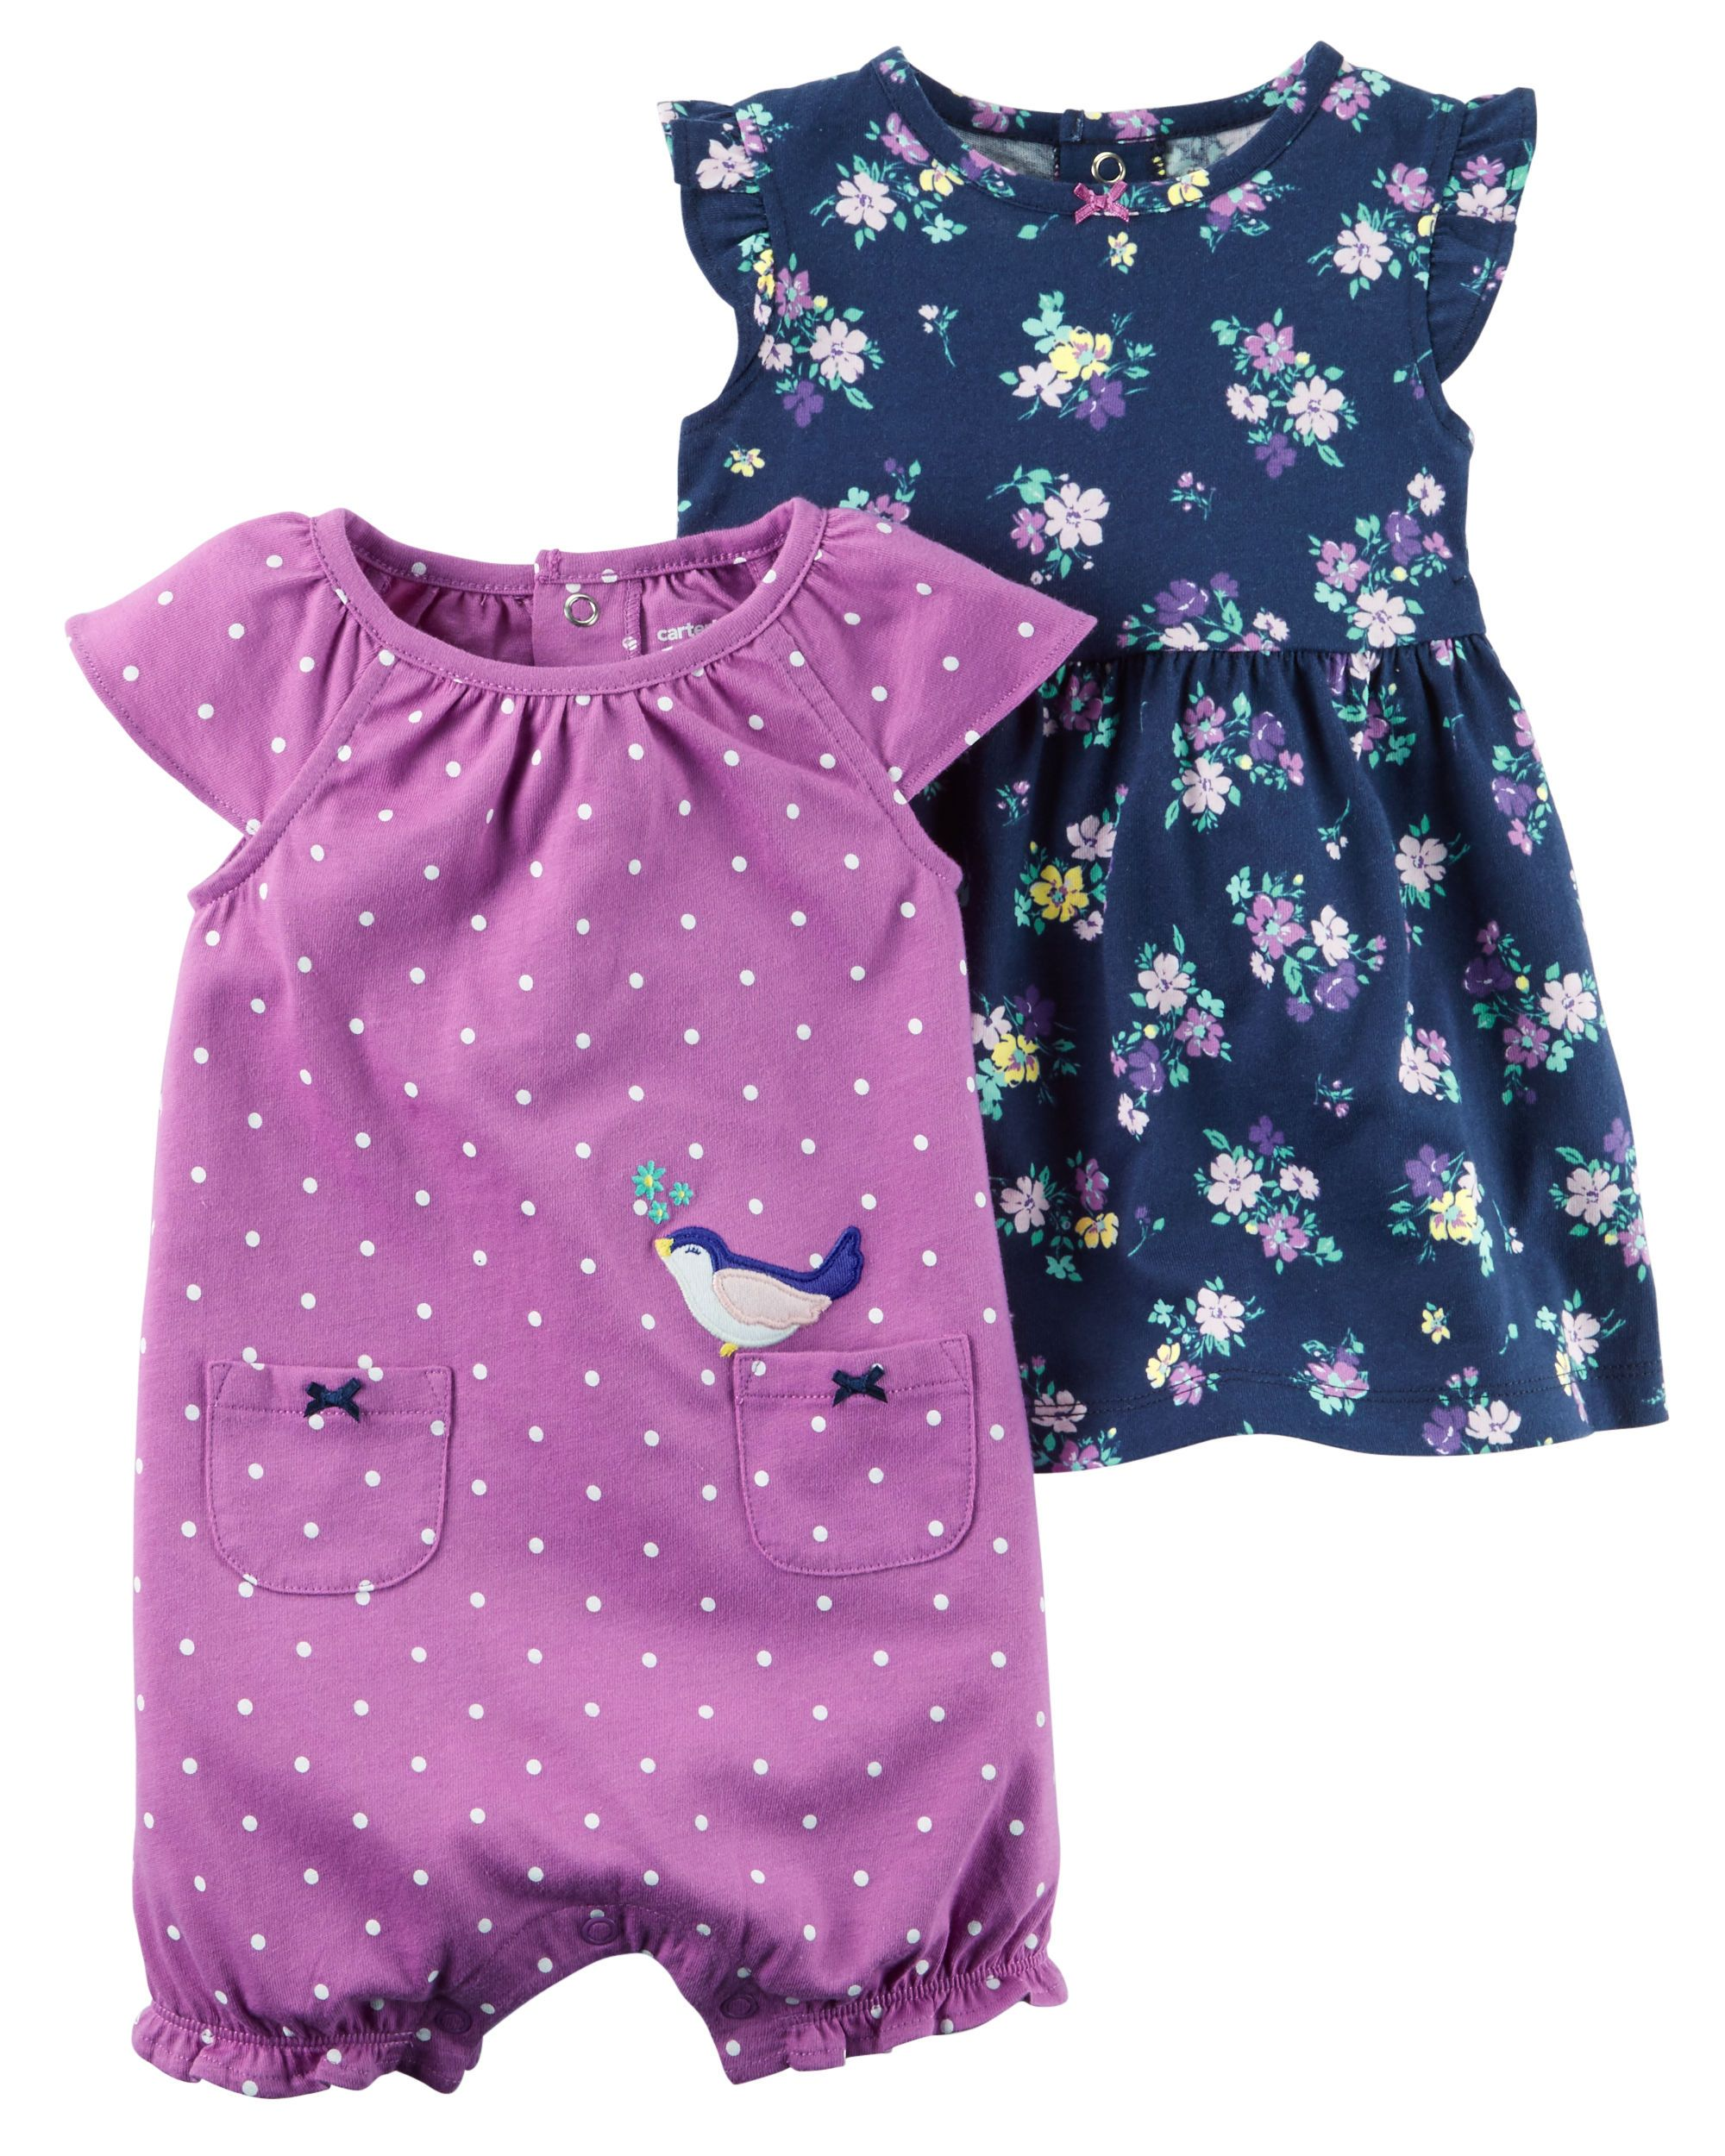 02b6a2a29 2-Pack Dress & Romper Set | Carter's | Carters baby girl, Girls ...